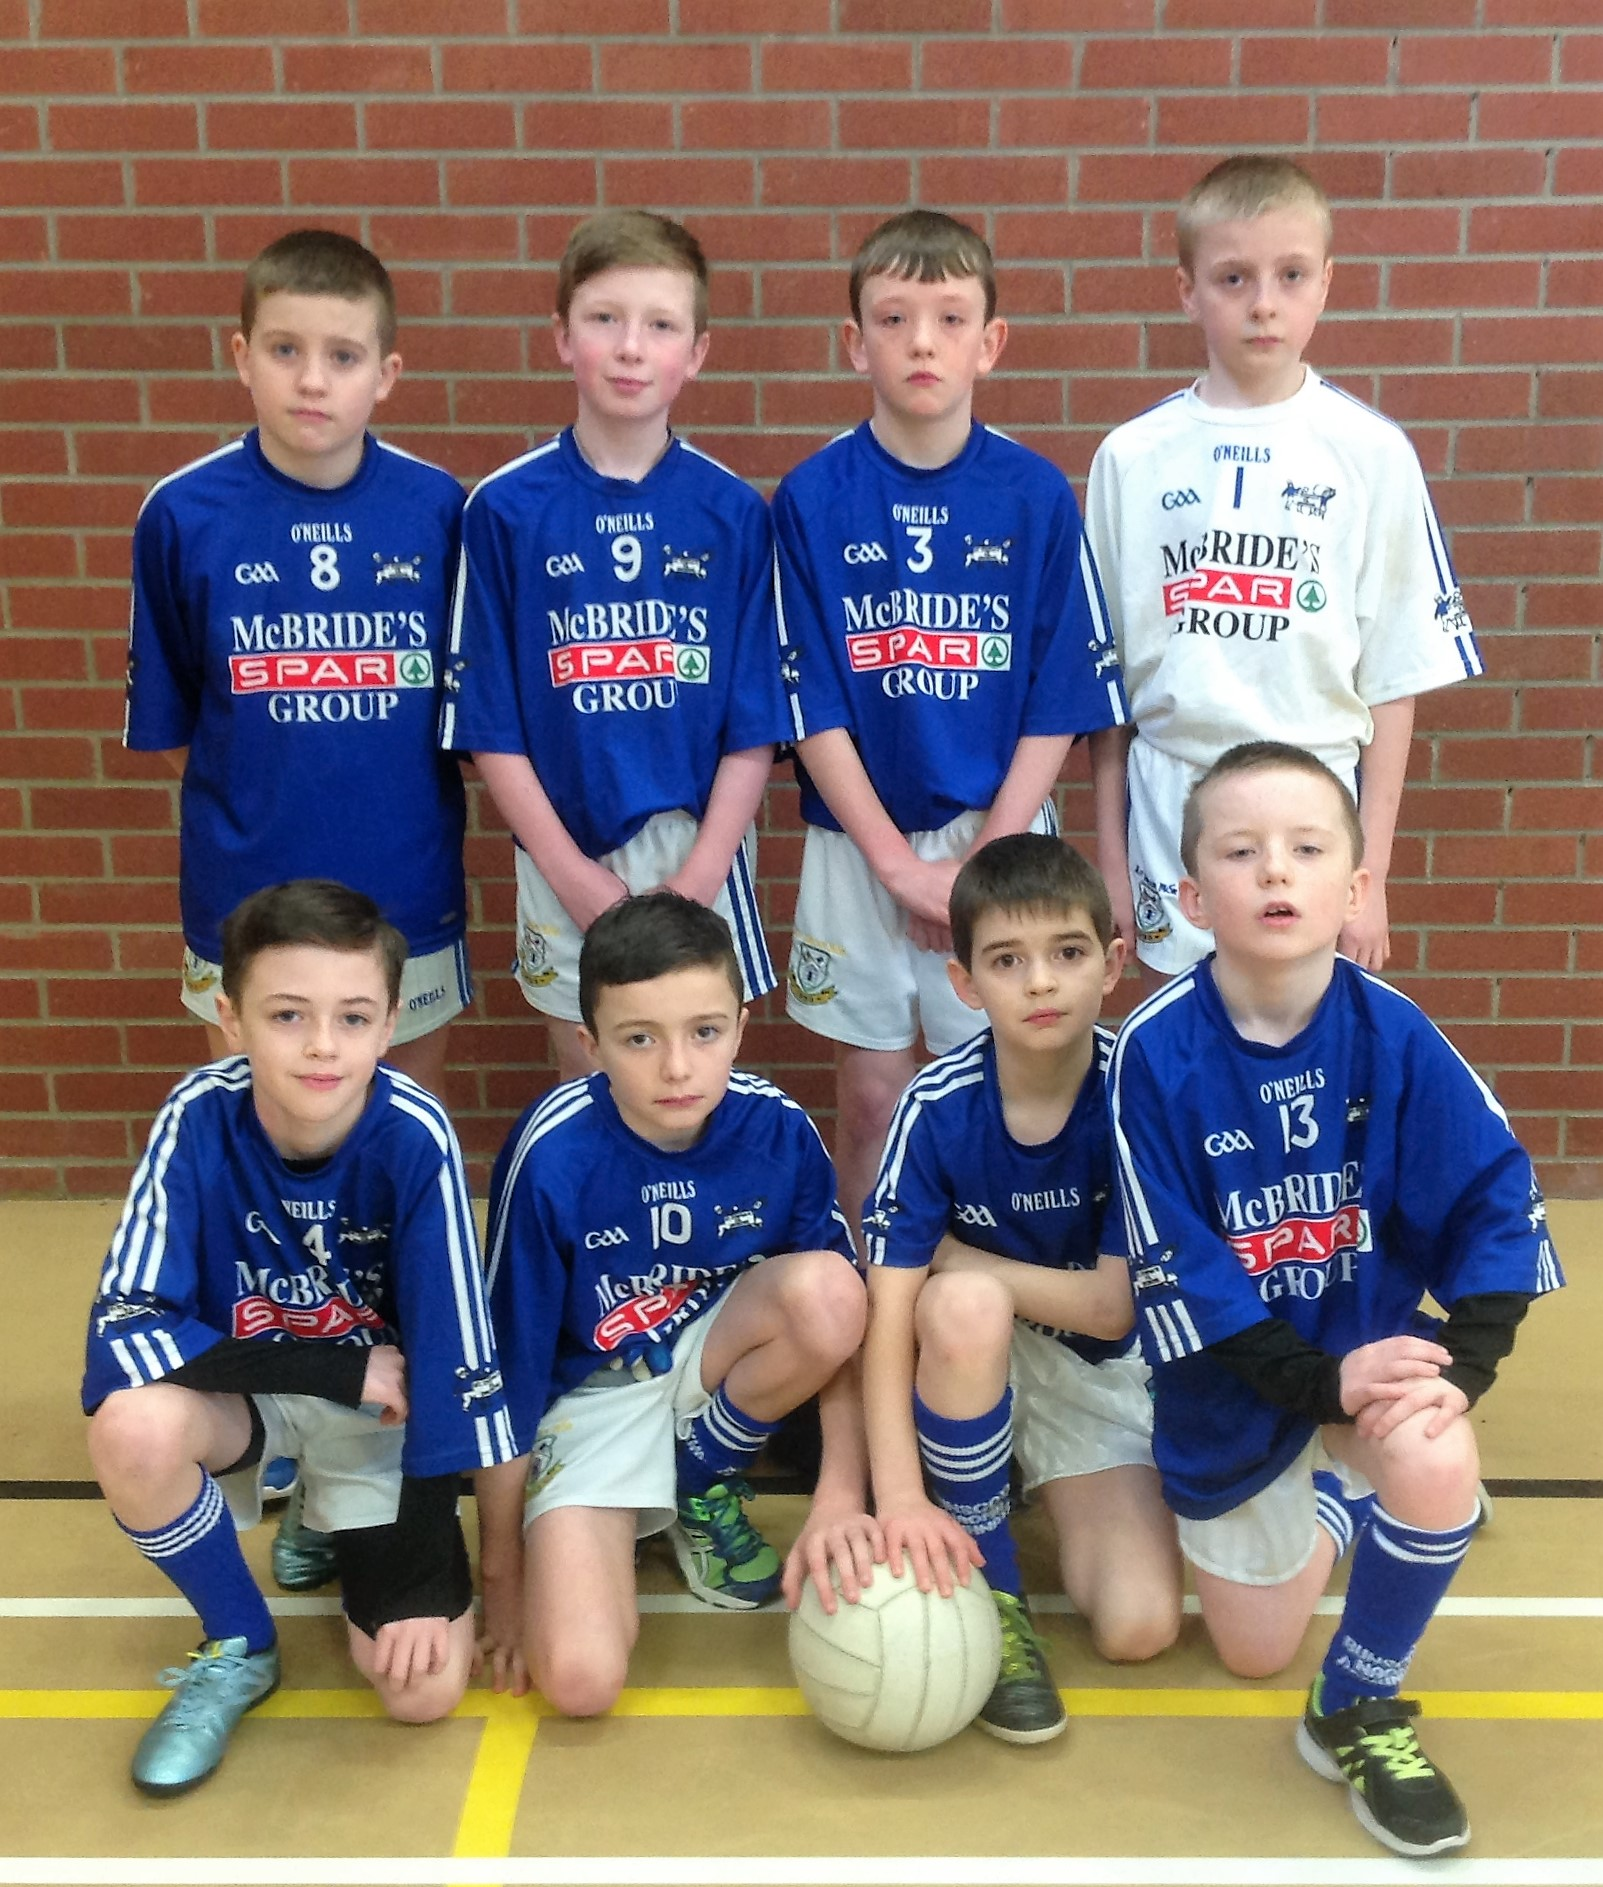 ALLIANZ Cumann na mBunscol – BOYS' INDOOR FOOTBALL HEAT 3: OMAGH